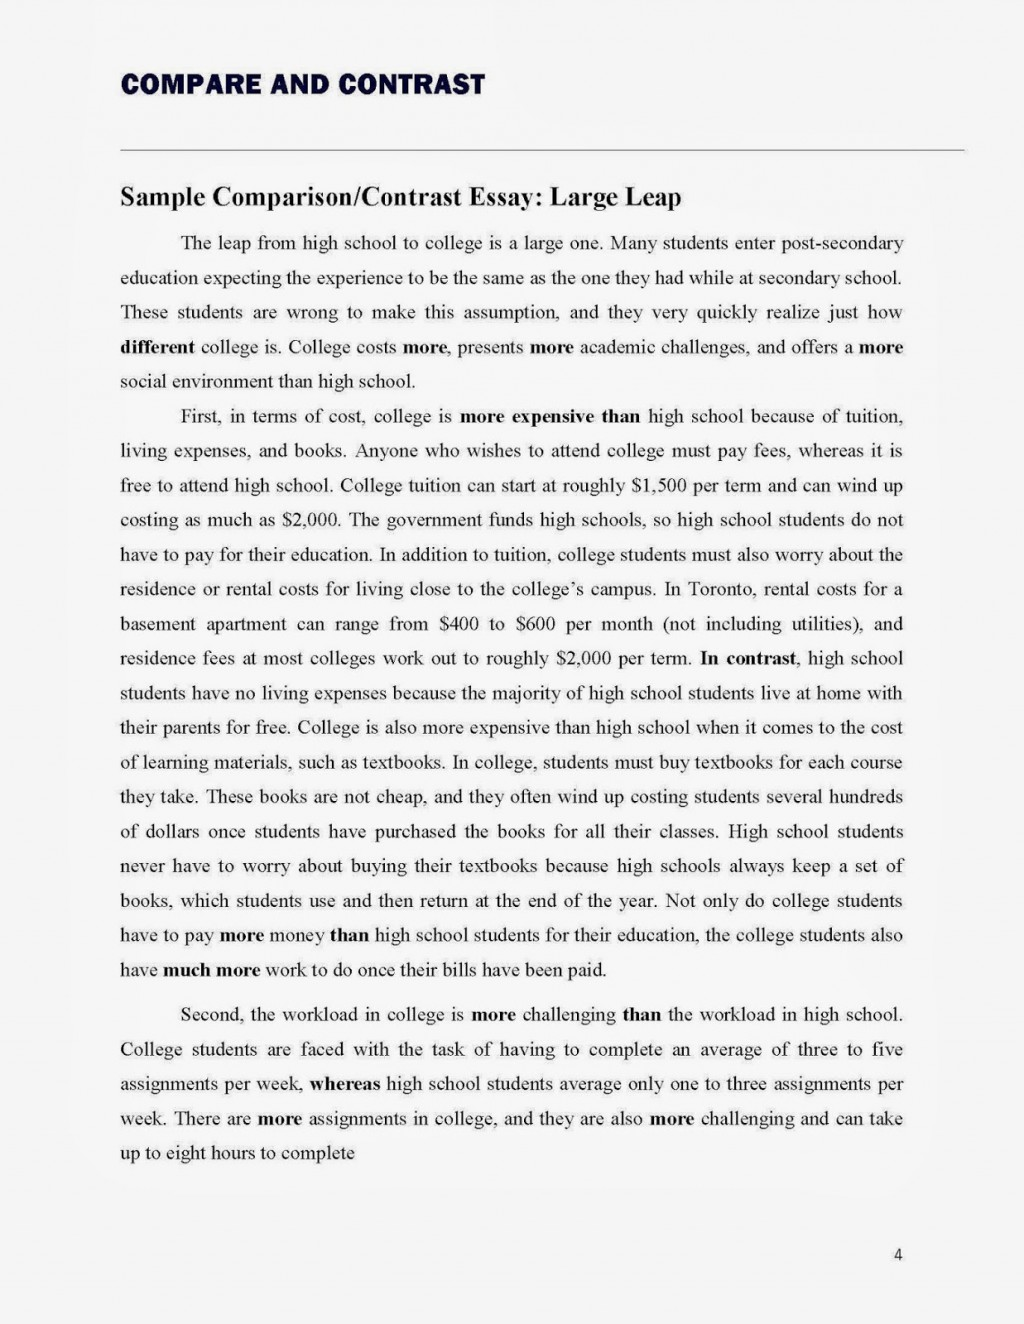 001 Compare20and20contrast20essay Page 4 Compare And Contrast Essay Topics For College Students Beautiful Large